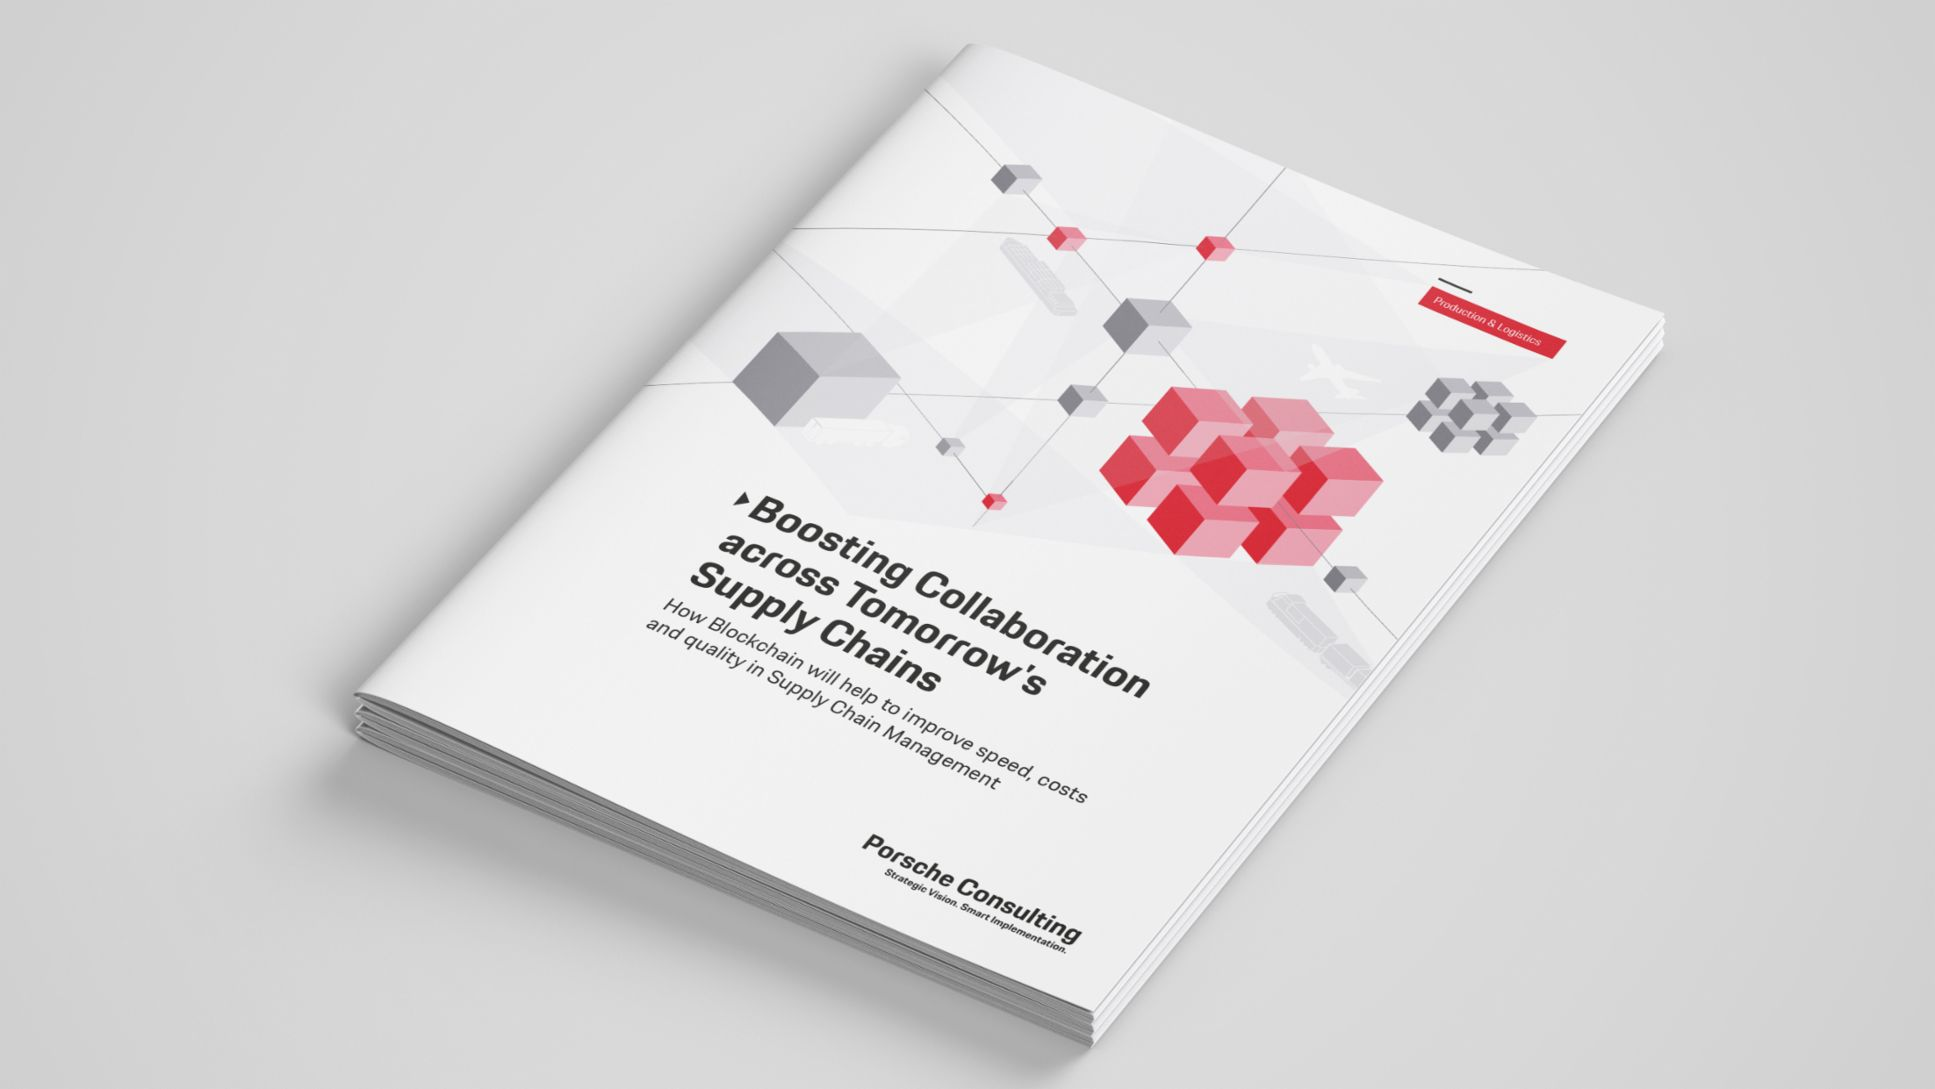 Blockchain im Supply Chain Management, Whitepaper (EN), 2020, Porsche Consulting GmbH